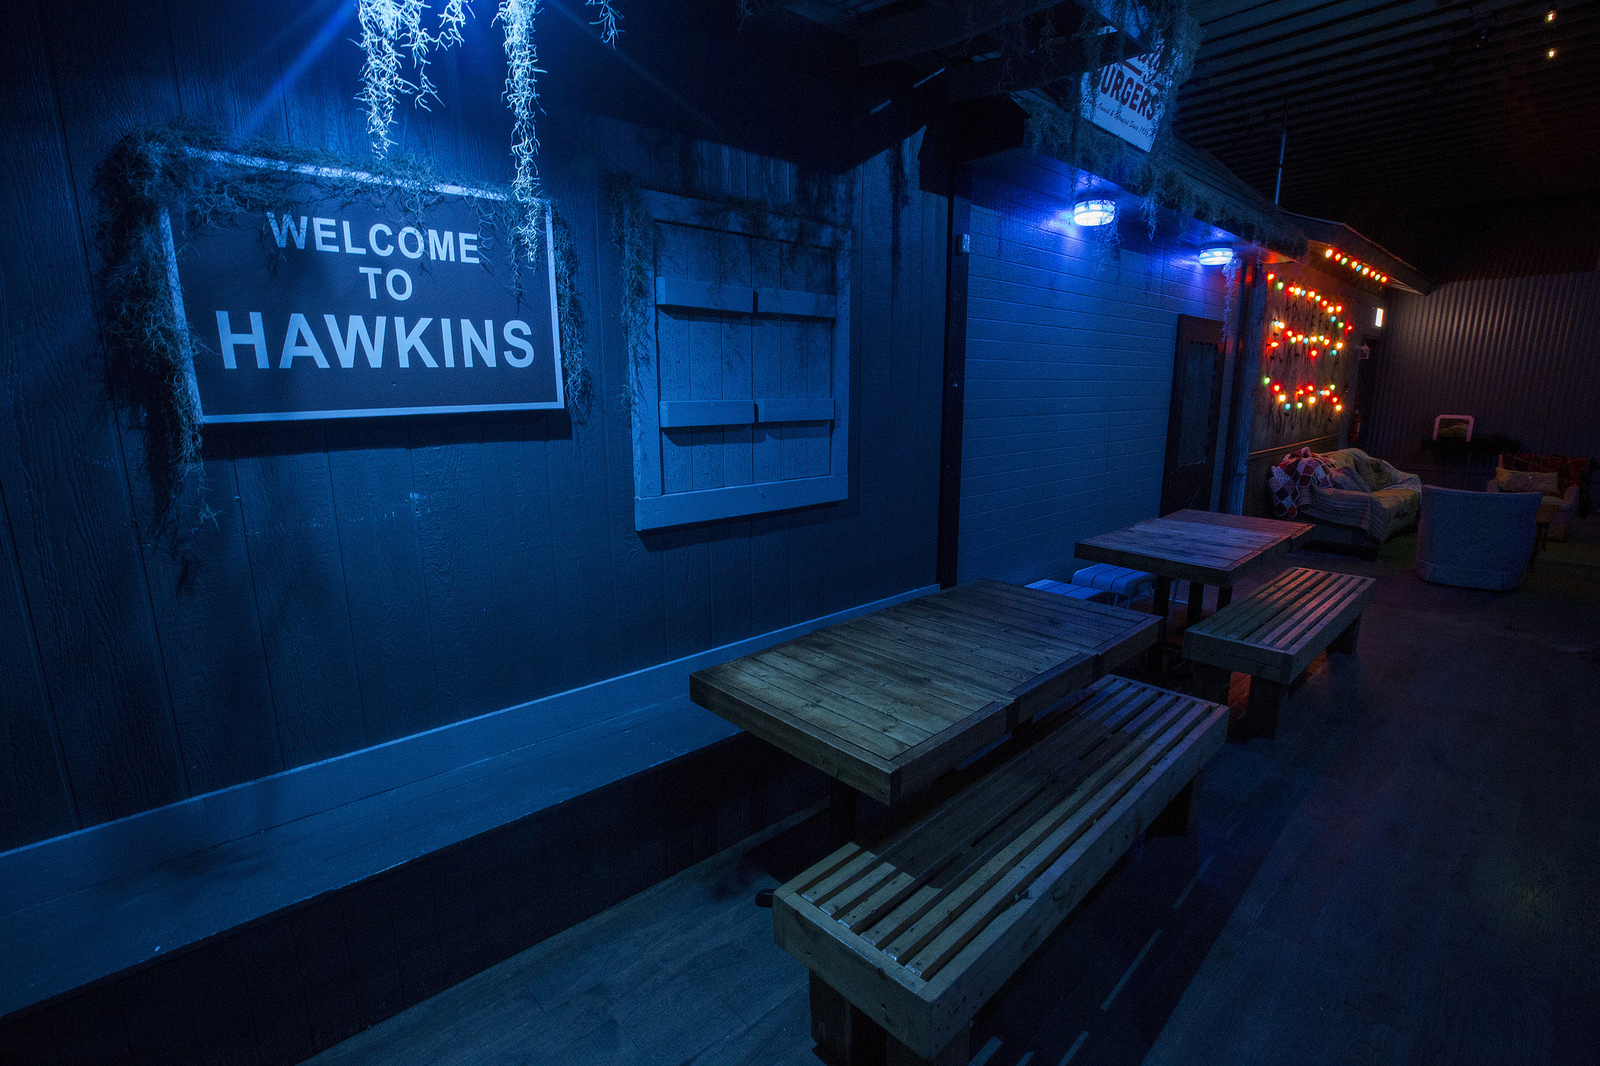 A Look Inside The Stranger Things Bar Pop Up In Chicago